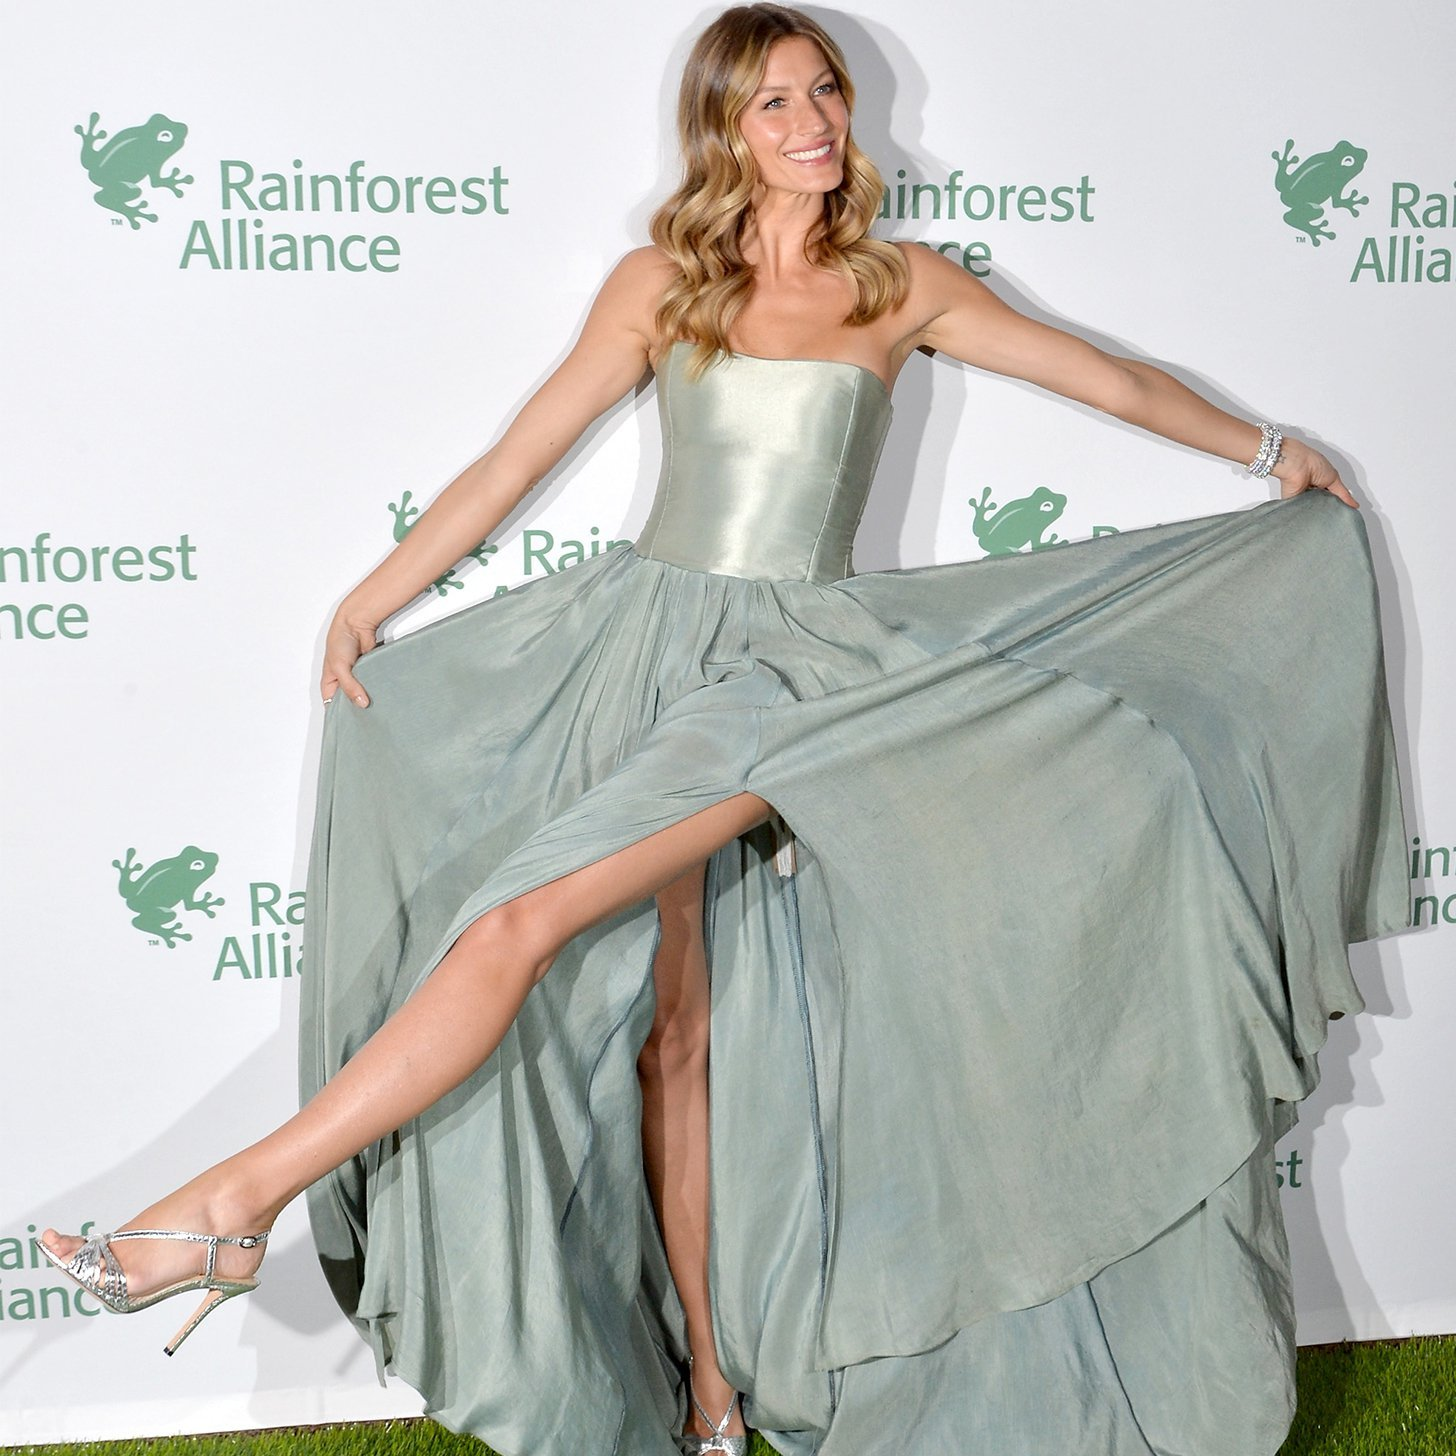 #VagabombPicks: Gisele Bundchen's Top 34 Looks Over the Years